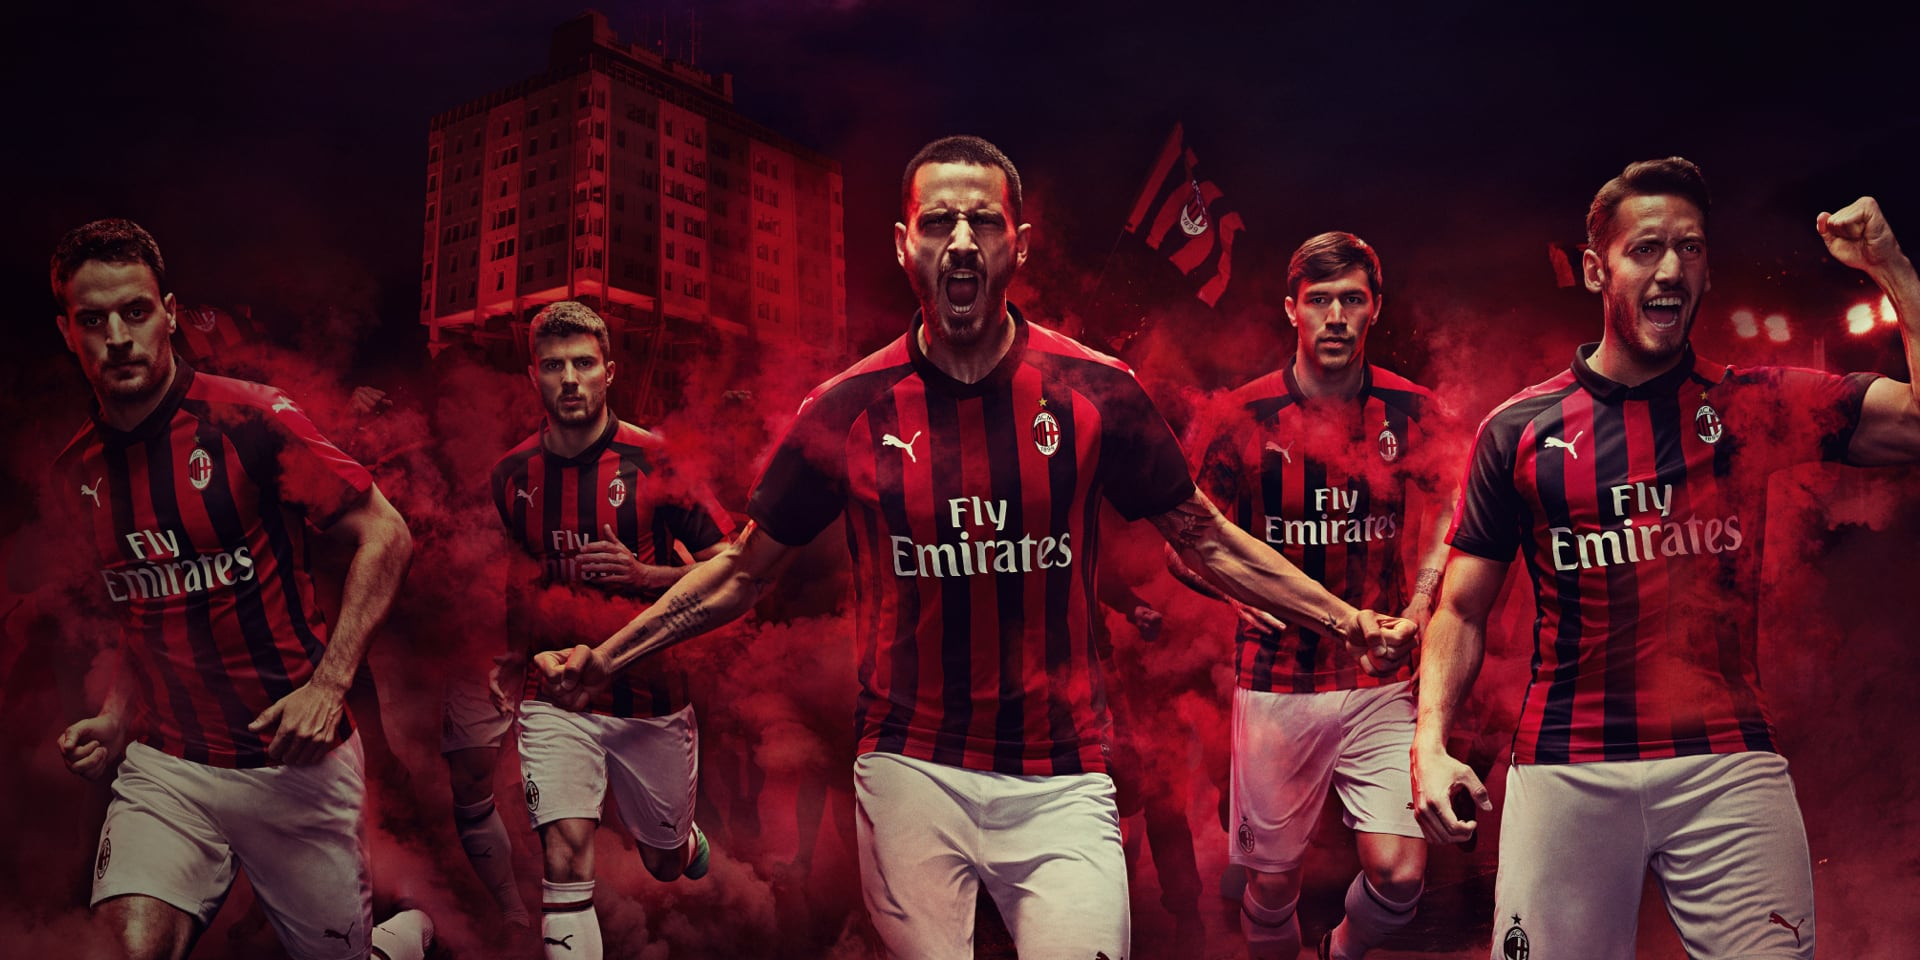 297c16e1bb35 PUMA® - INTRODUCING THE NEW AC MILAN 2018/19 HOME KIT